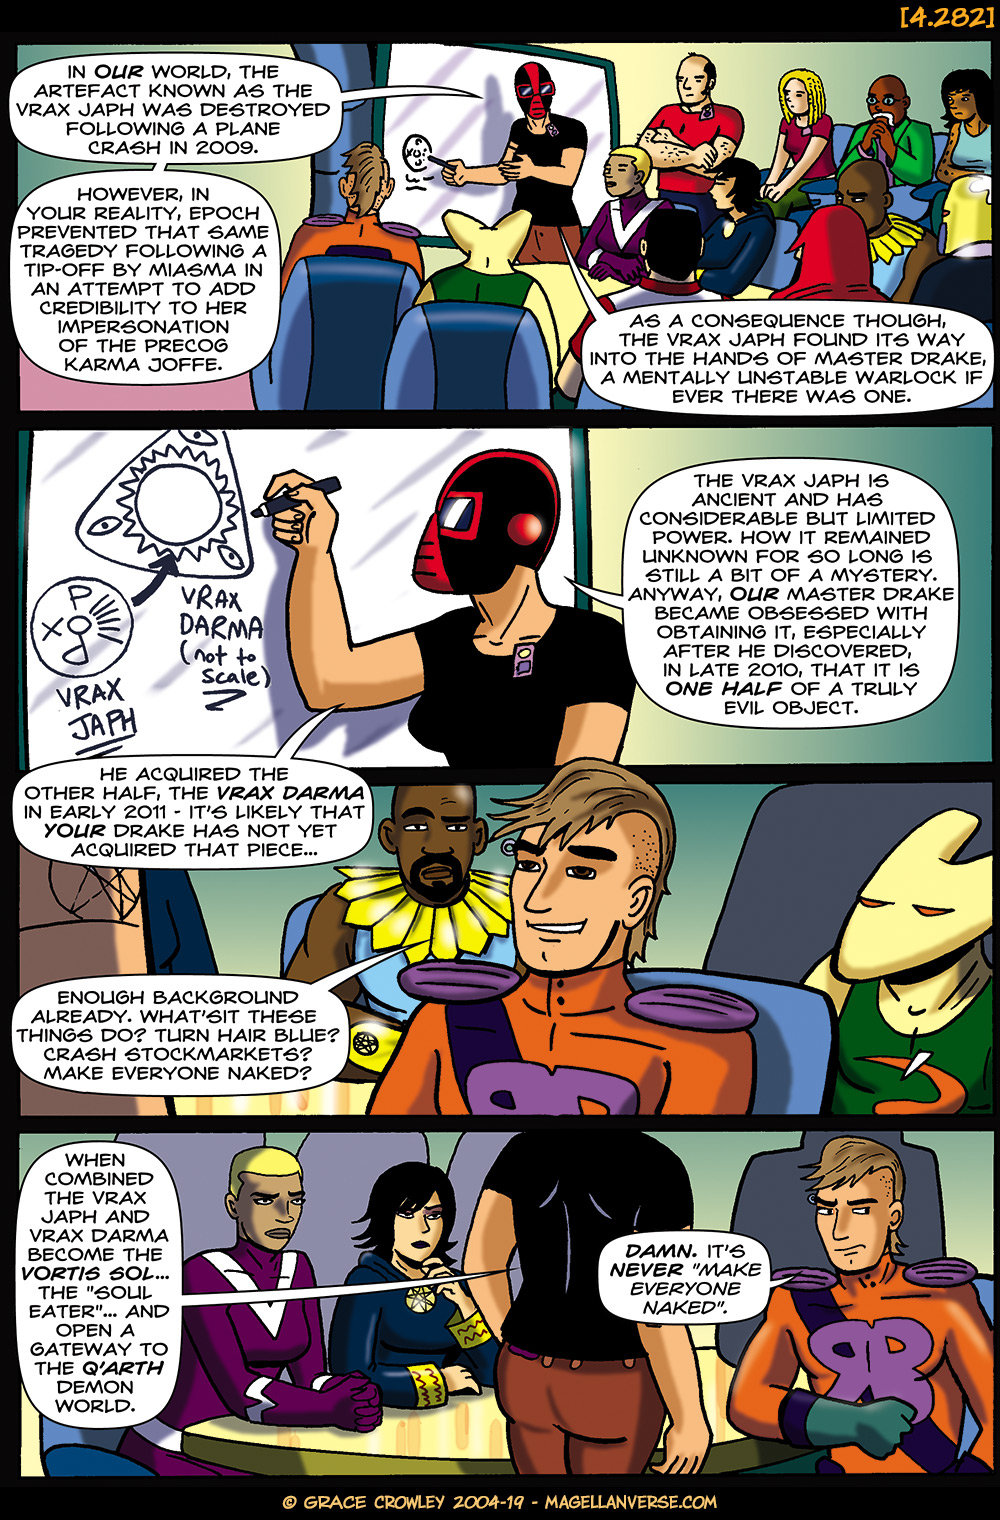 Page 4.282